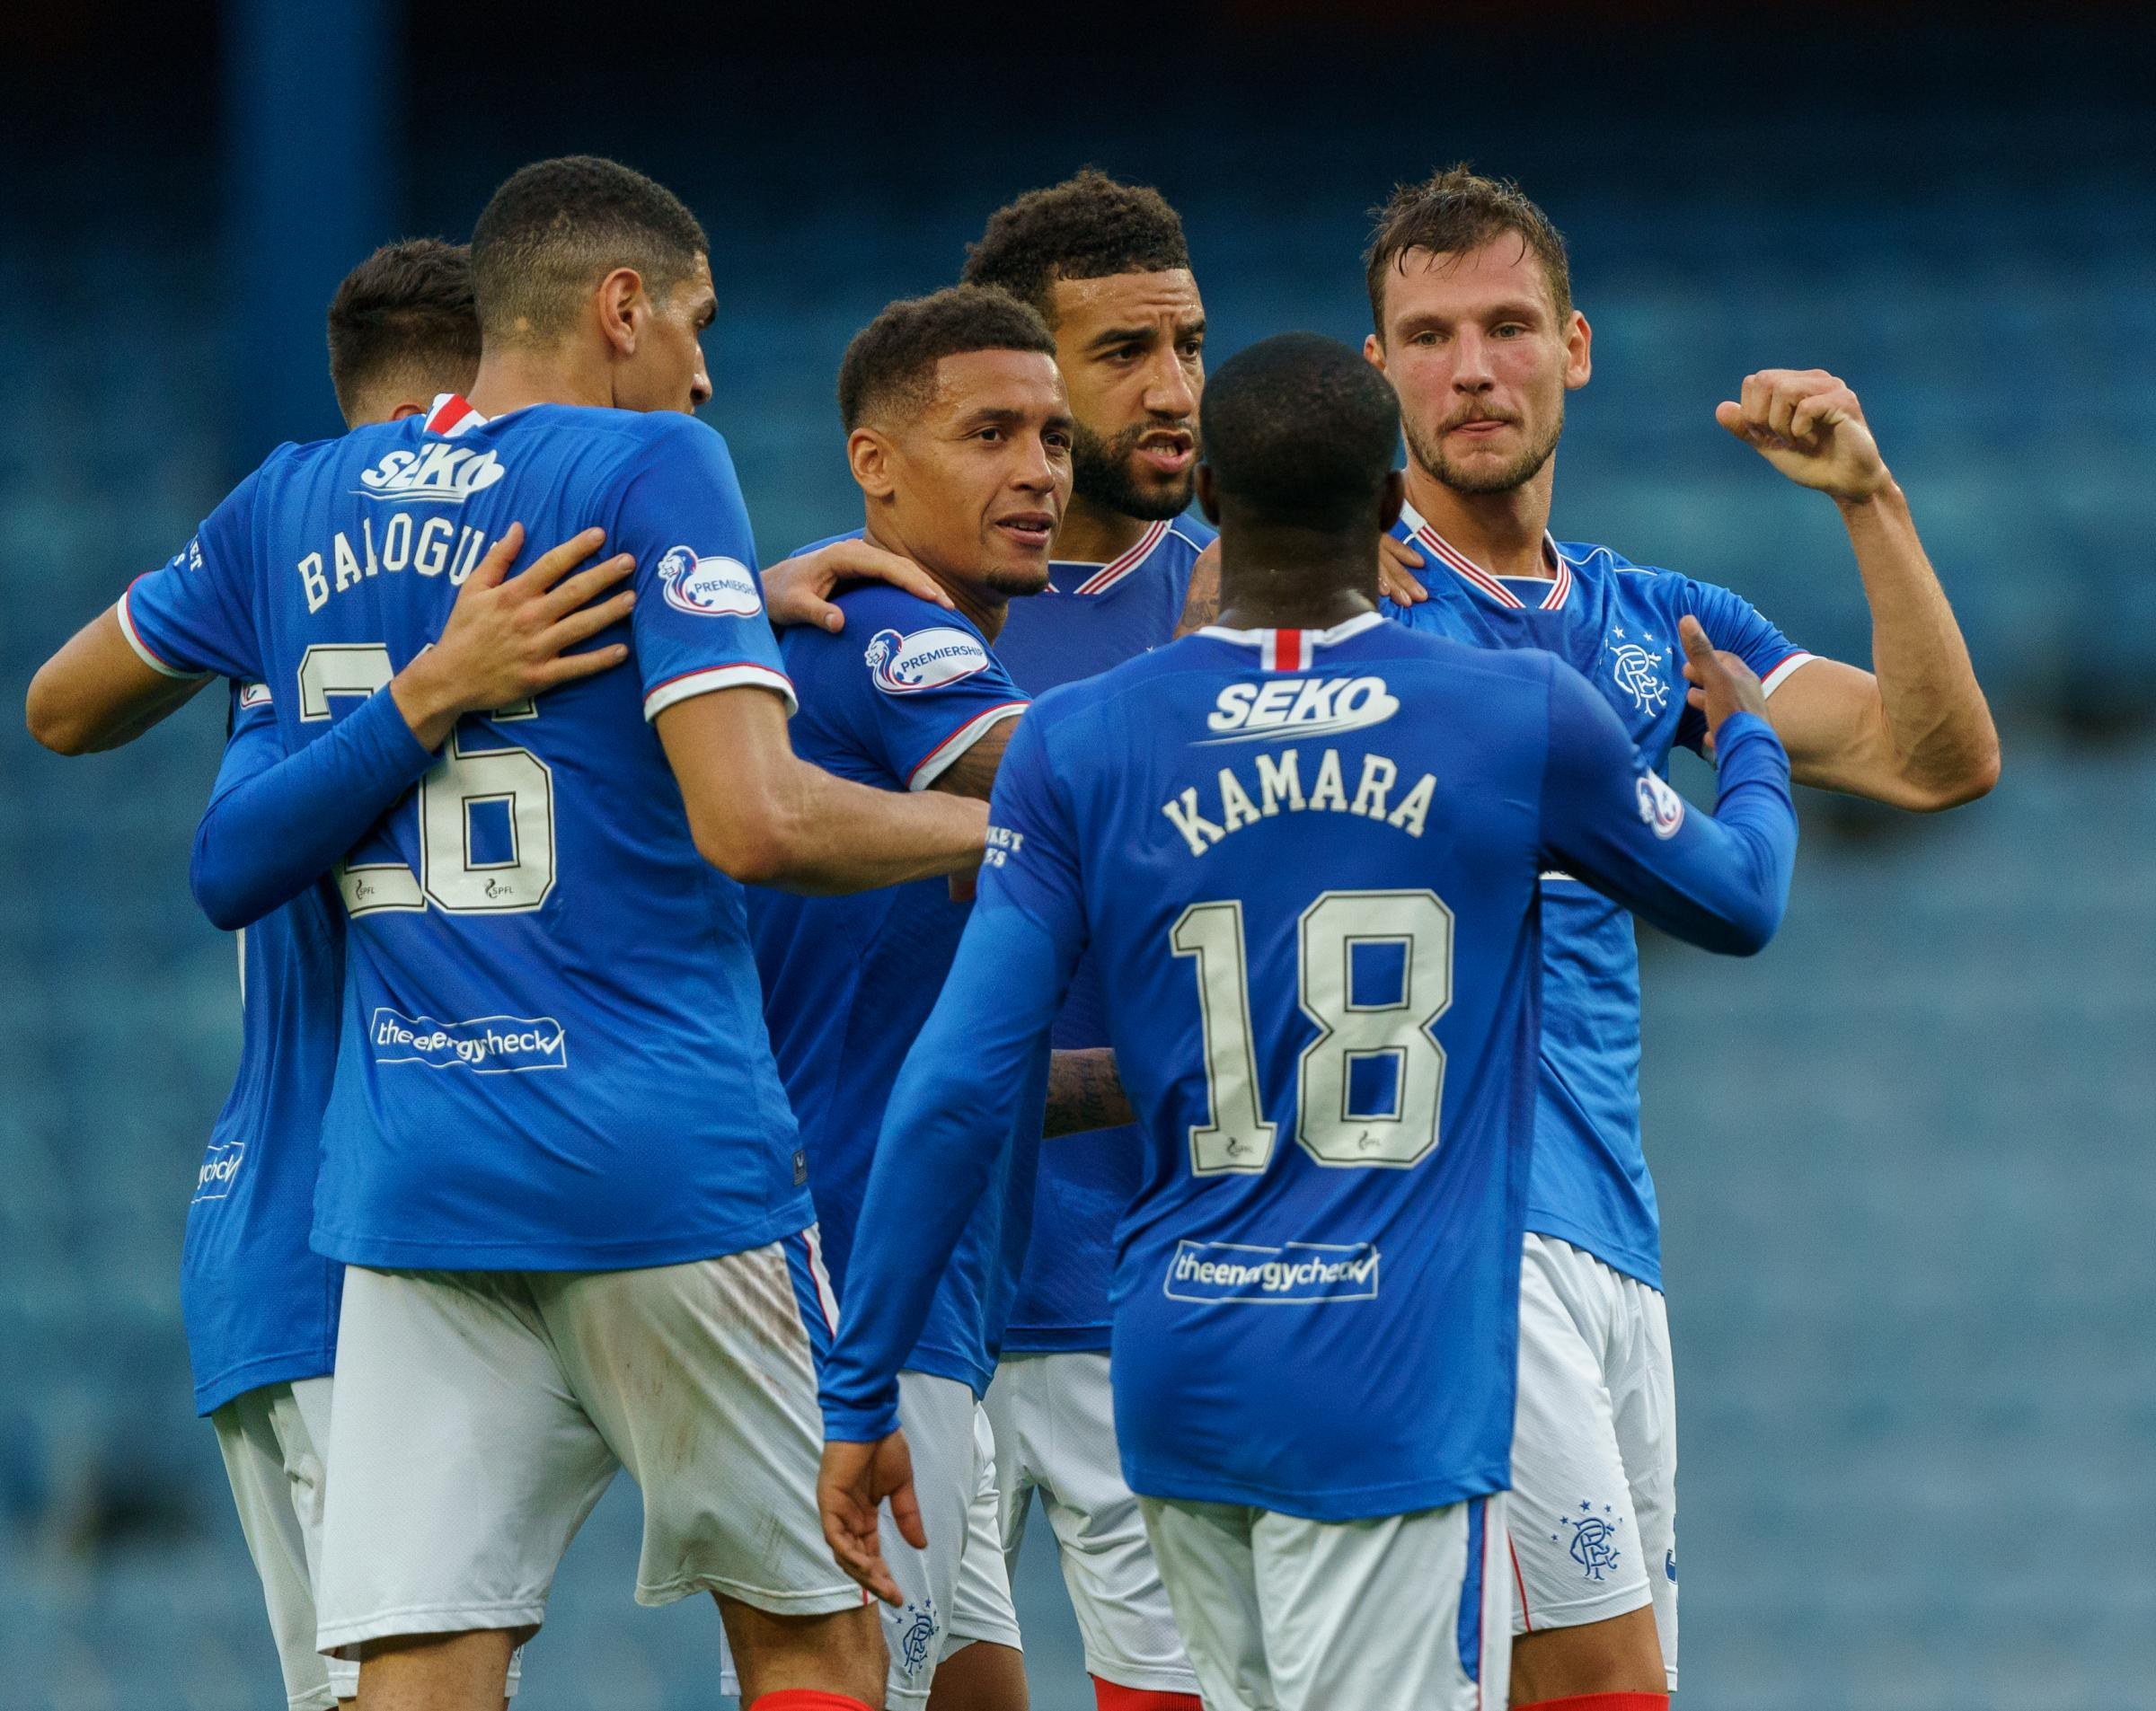 Rangers and St Johnstone players rated as Ibrox side hit top of Scottish Premiership